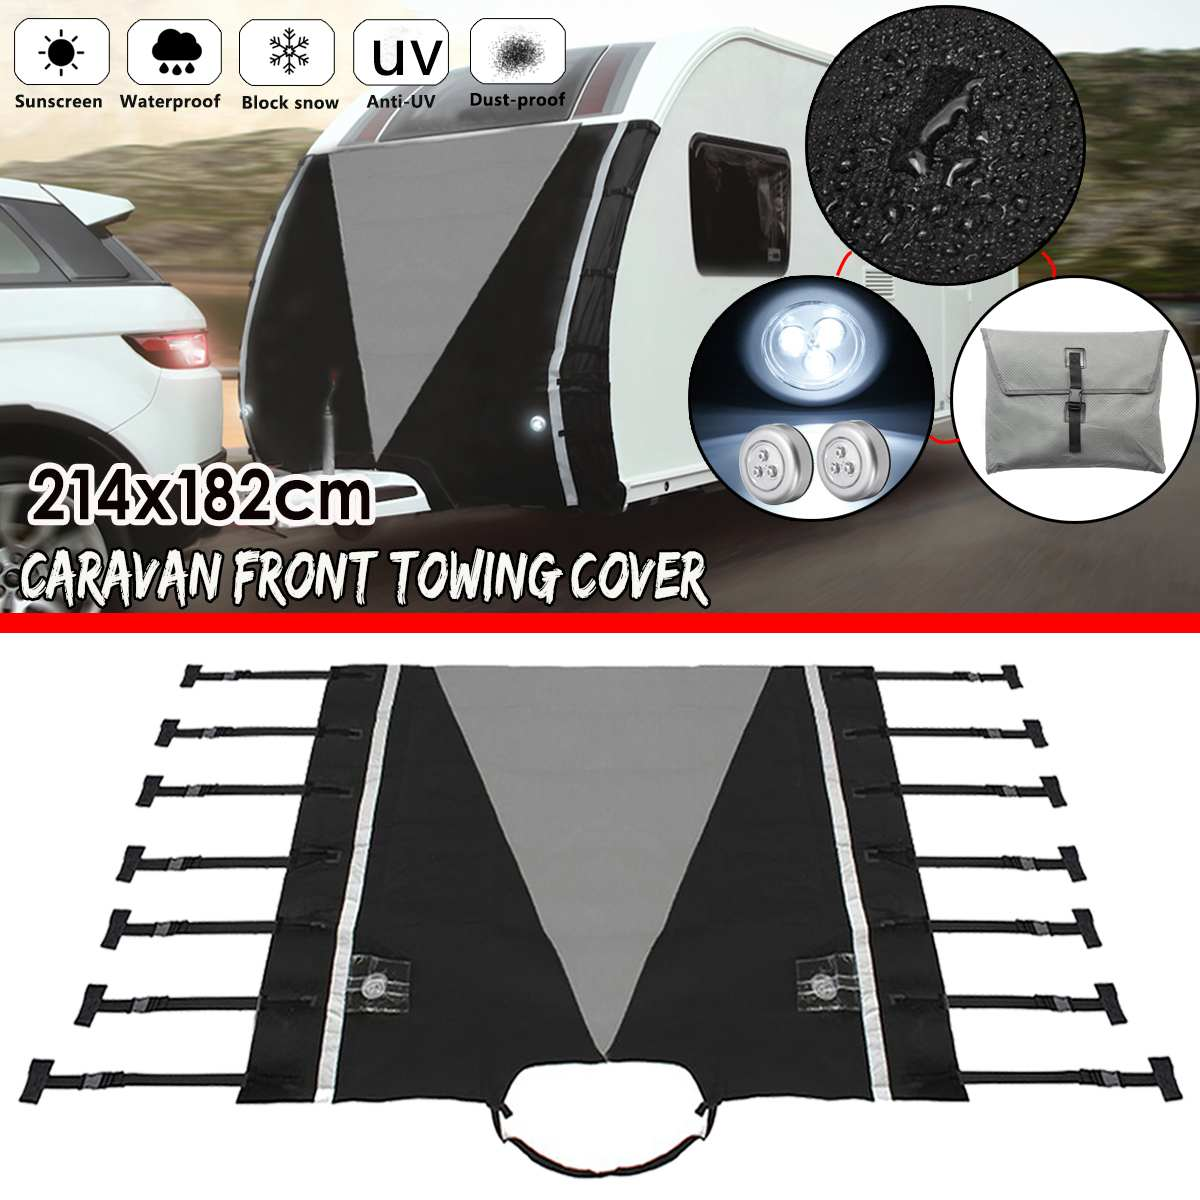 Universal RV Caravan Front Towing Cover Sunshade Dustproof Waterproof Protection With LED Lights For RV Caravan Motorhome